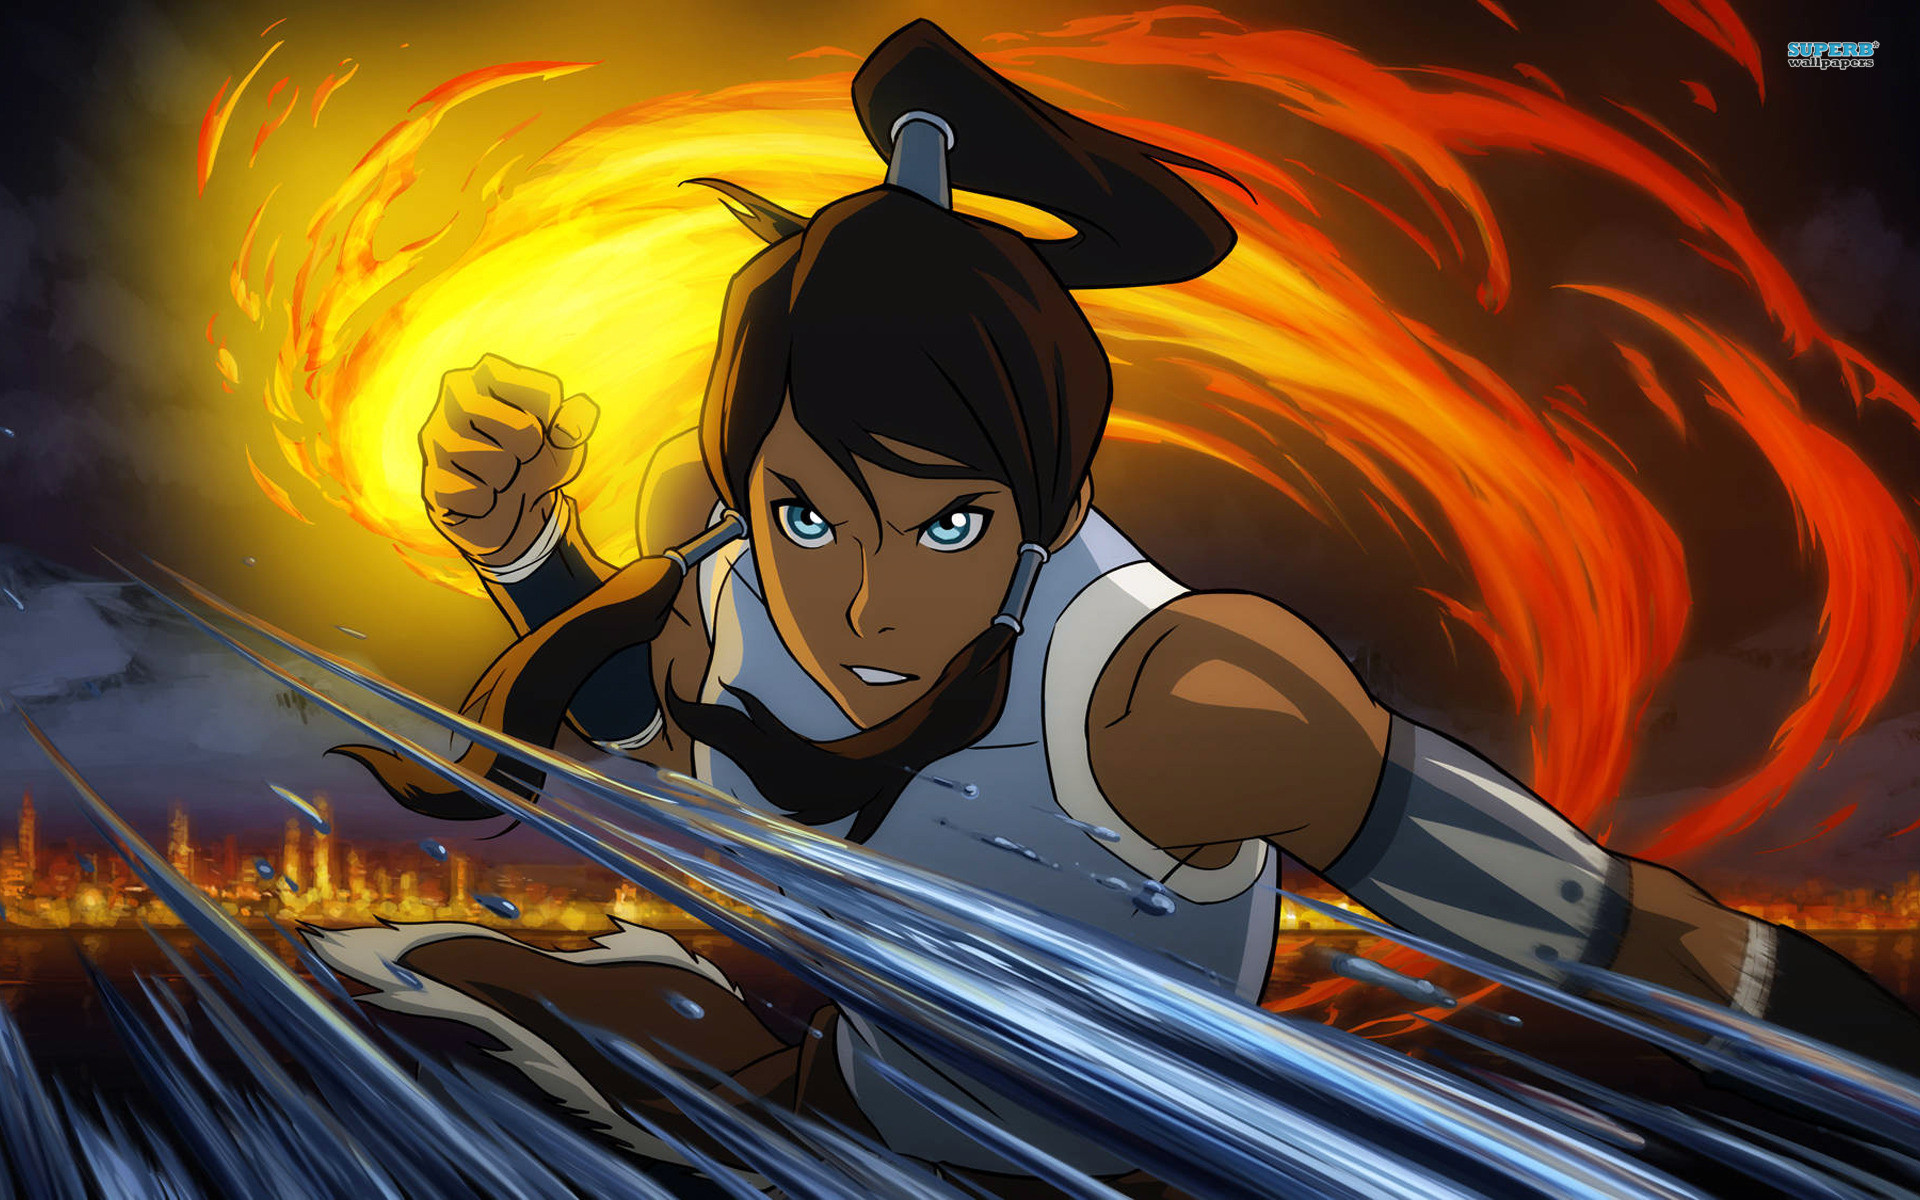 1920x1200 Korra - Avatar: The Legend of Korra wallpaper  jpg